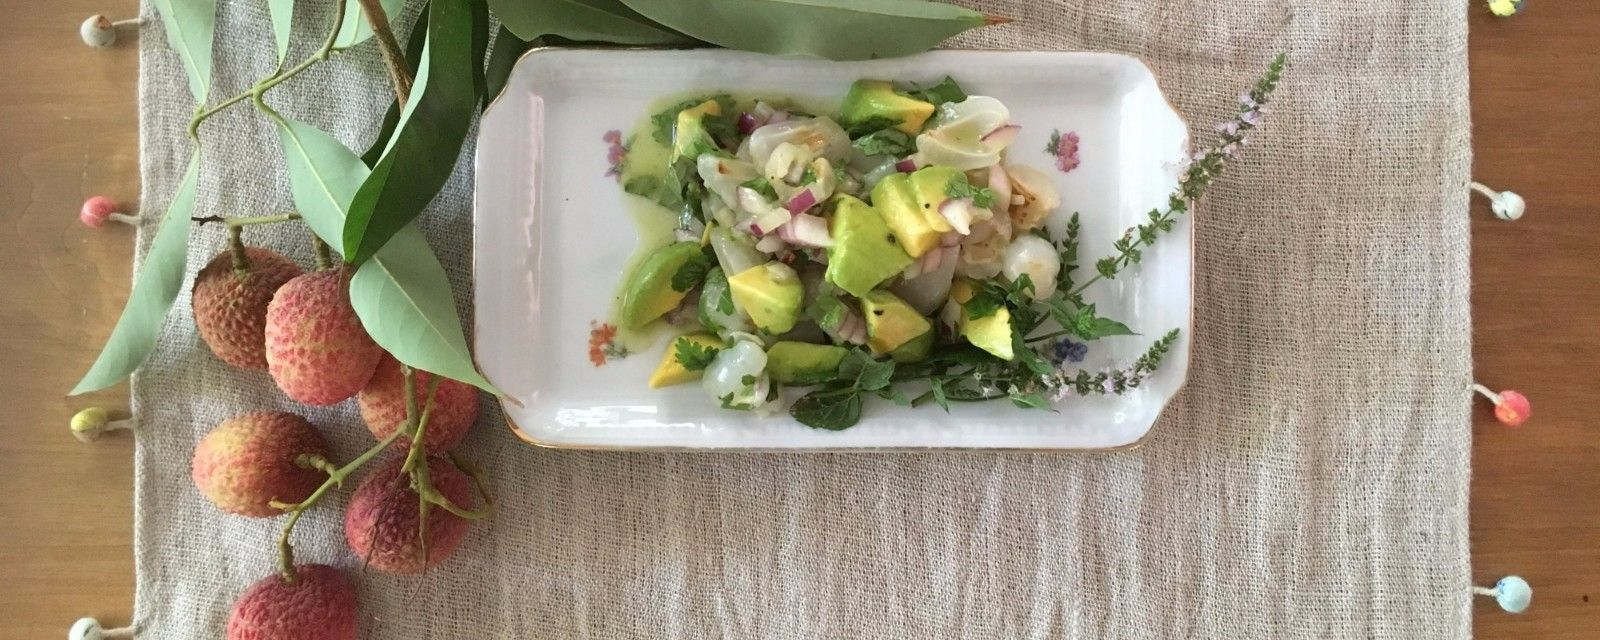 Lychee ceviche with avocado - Beth